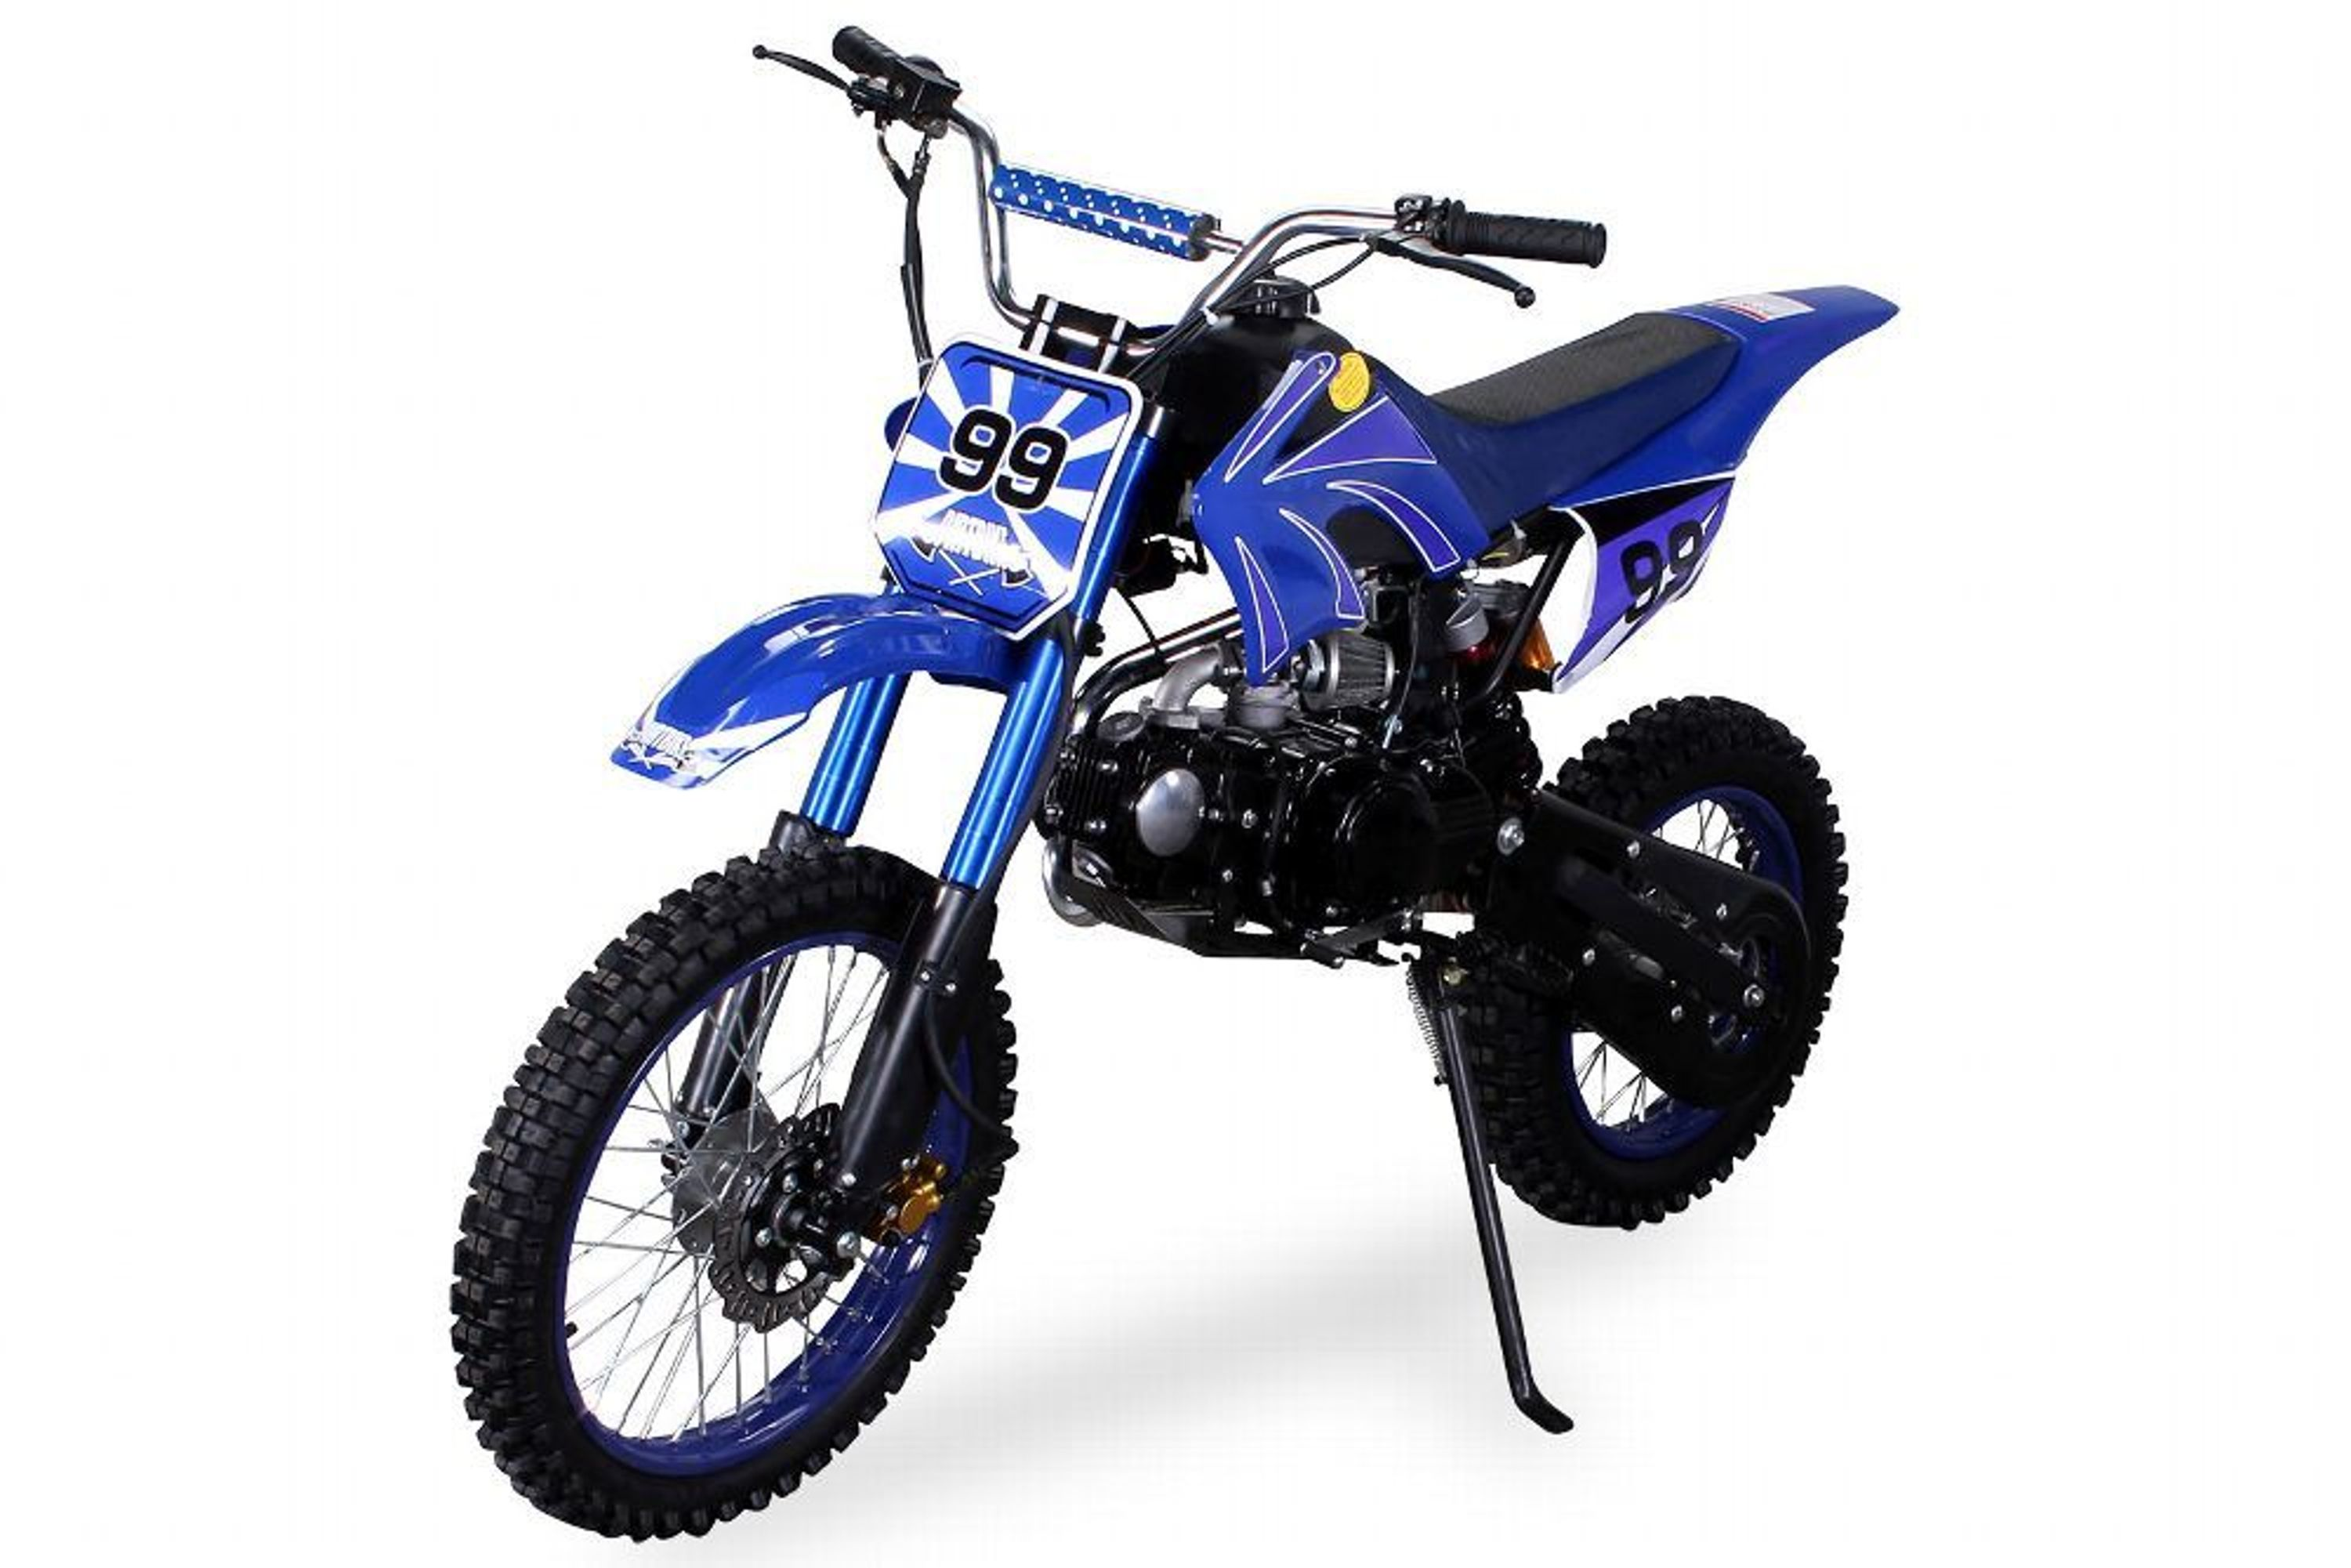 kinder jugend enduro crossbike 125 cc 4 takt. Black Bedroom Furniture Sets. Home Design Ideas